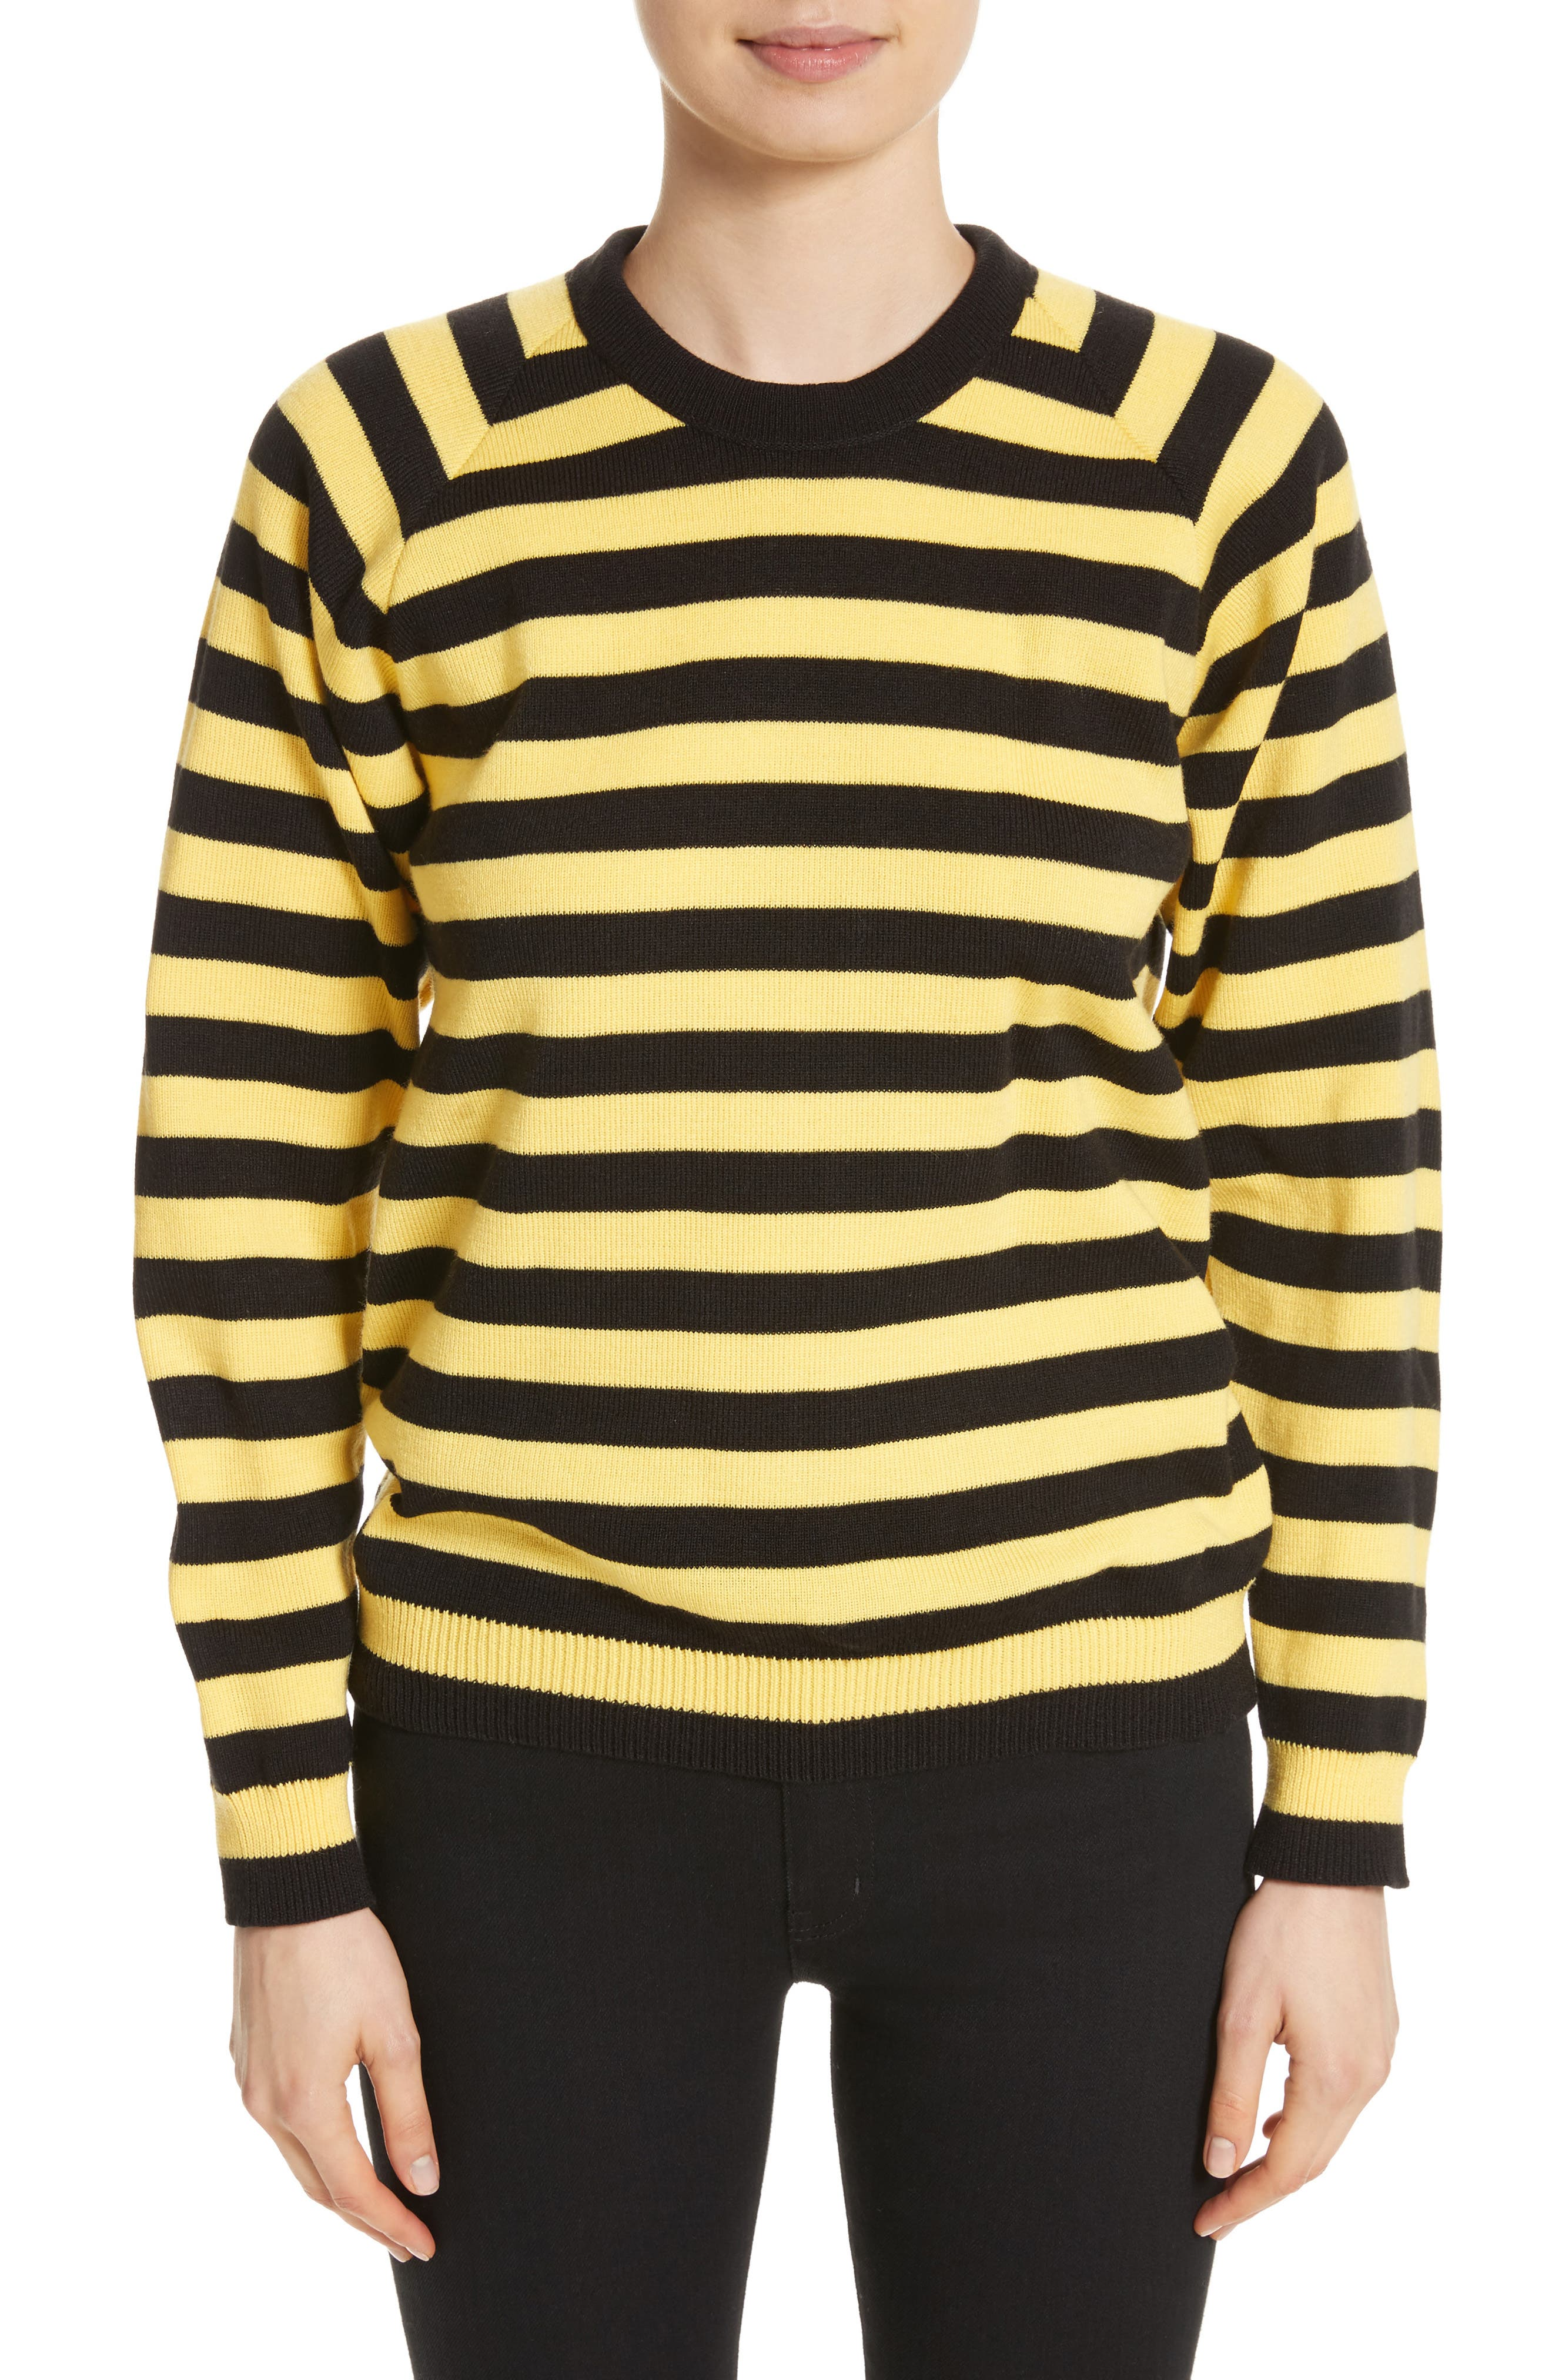 Bumblebee Stripe Sweater,                             Main thumbnail 1, color,                             750